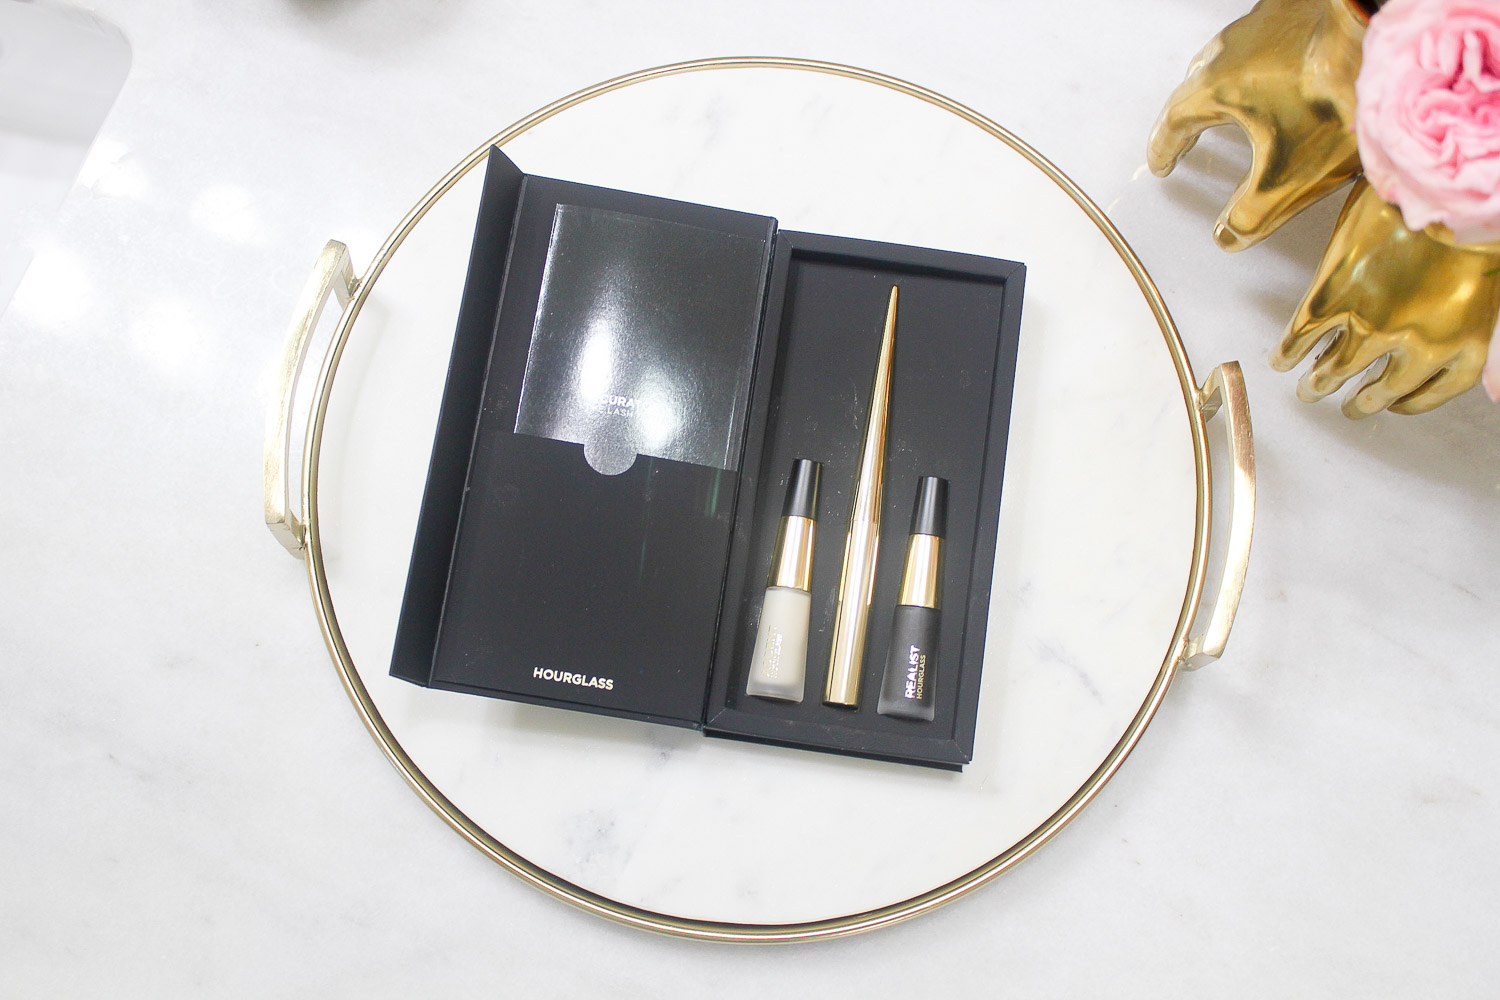 hourglass lash curator tool primer and mascara set